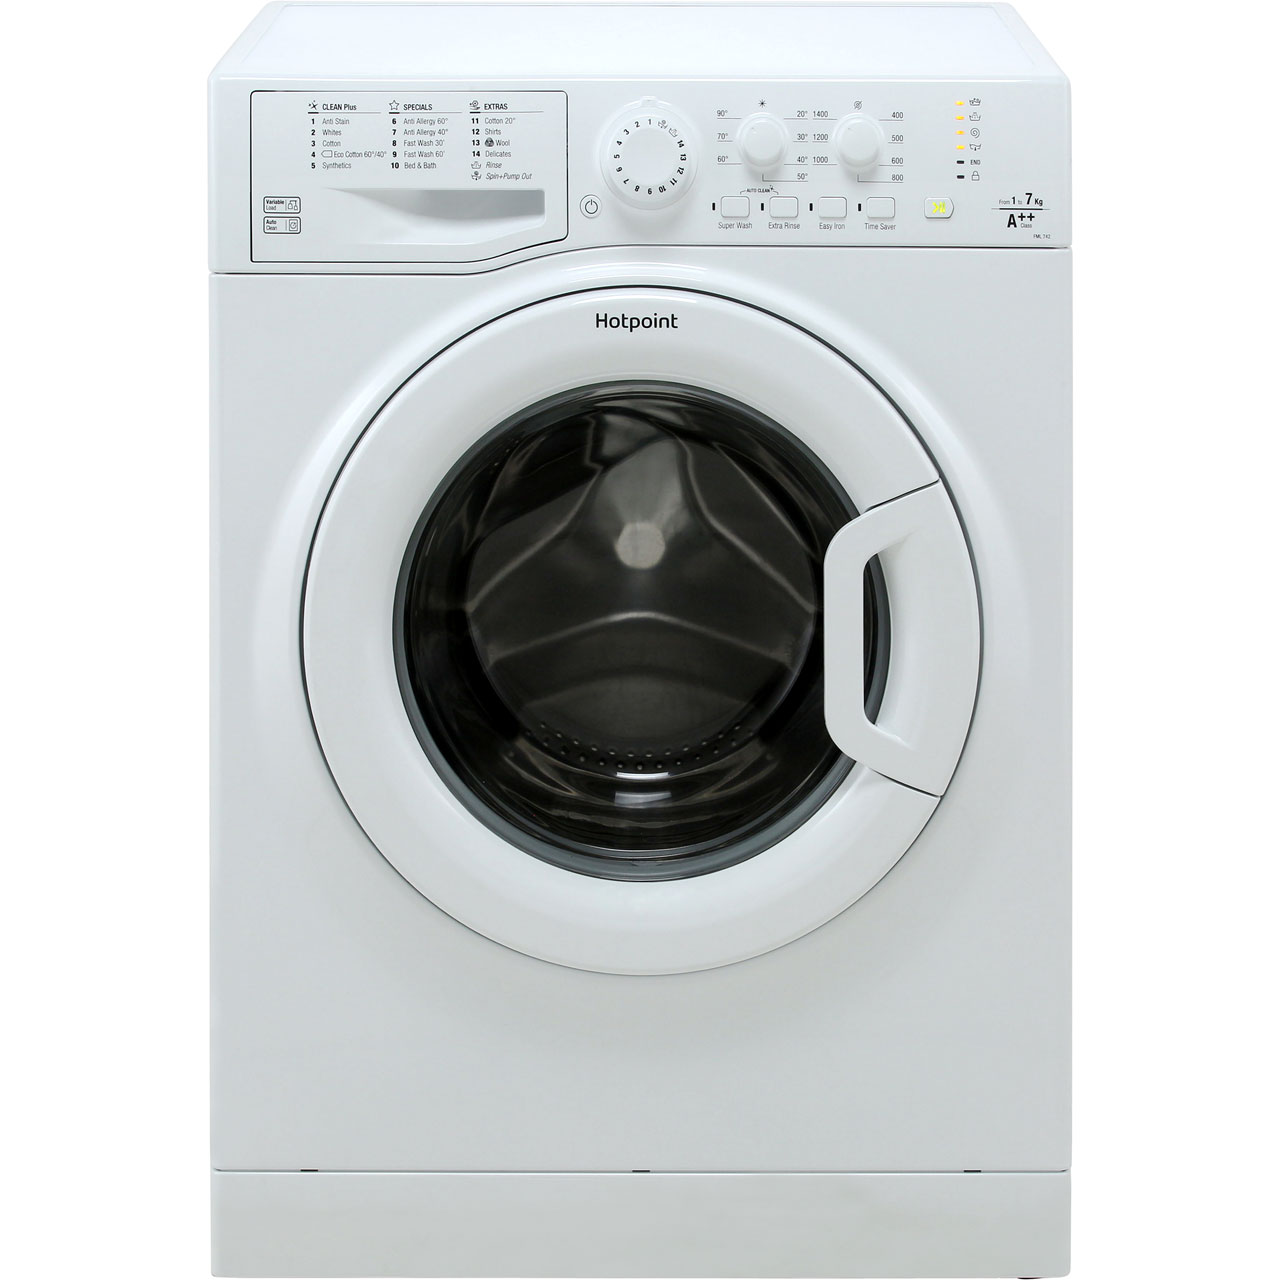 Where we produce ariston-hotpoint want to buy a washing machine and the country of the manufacturer does not know